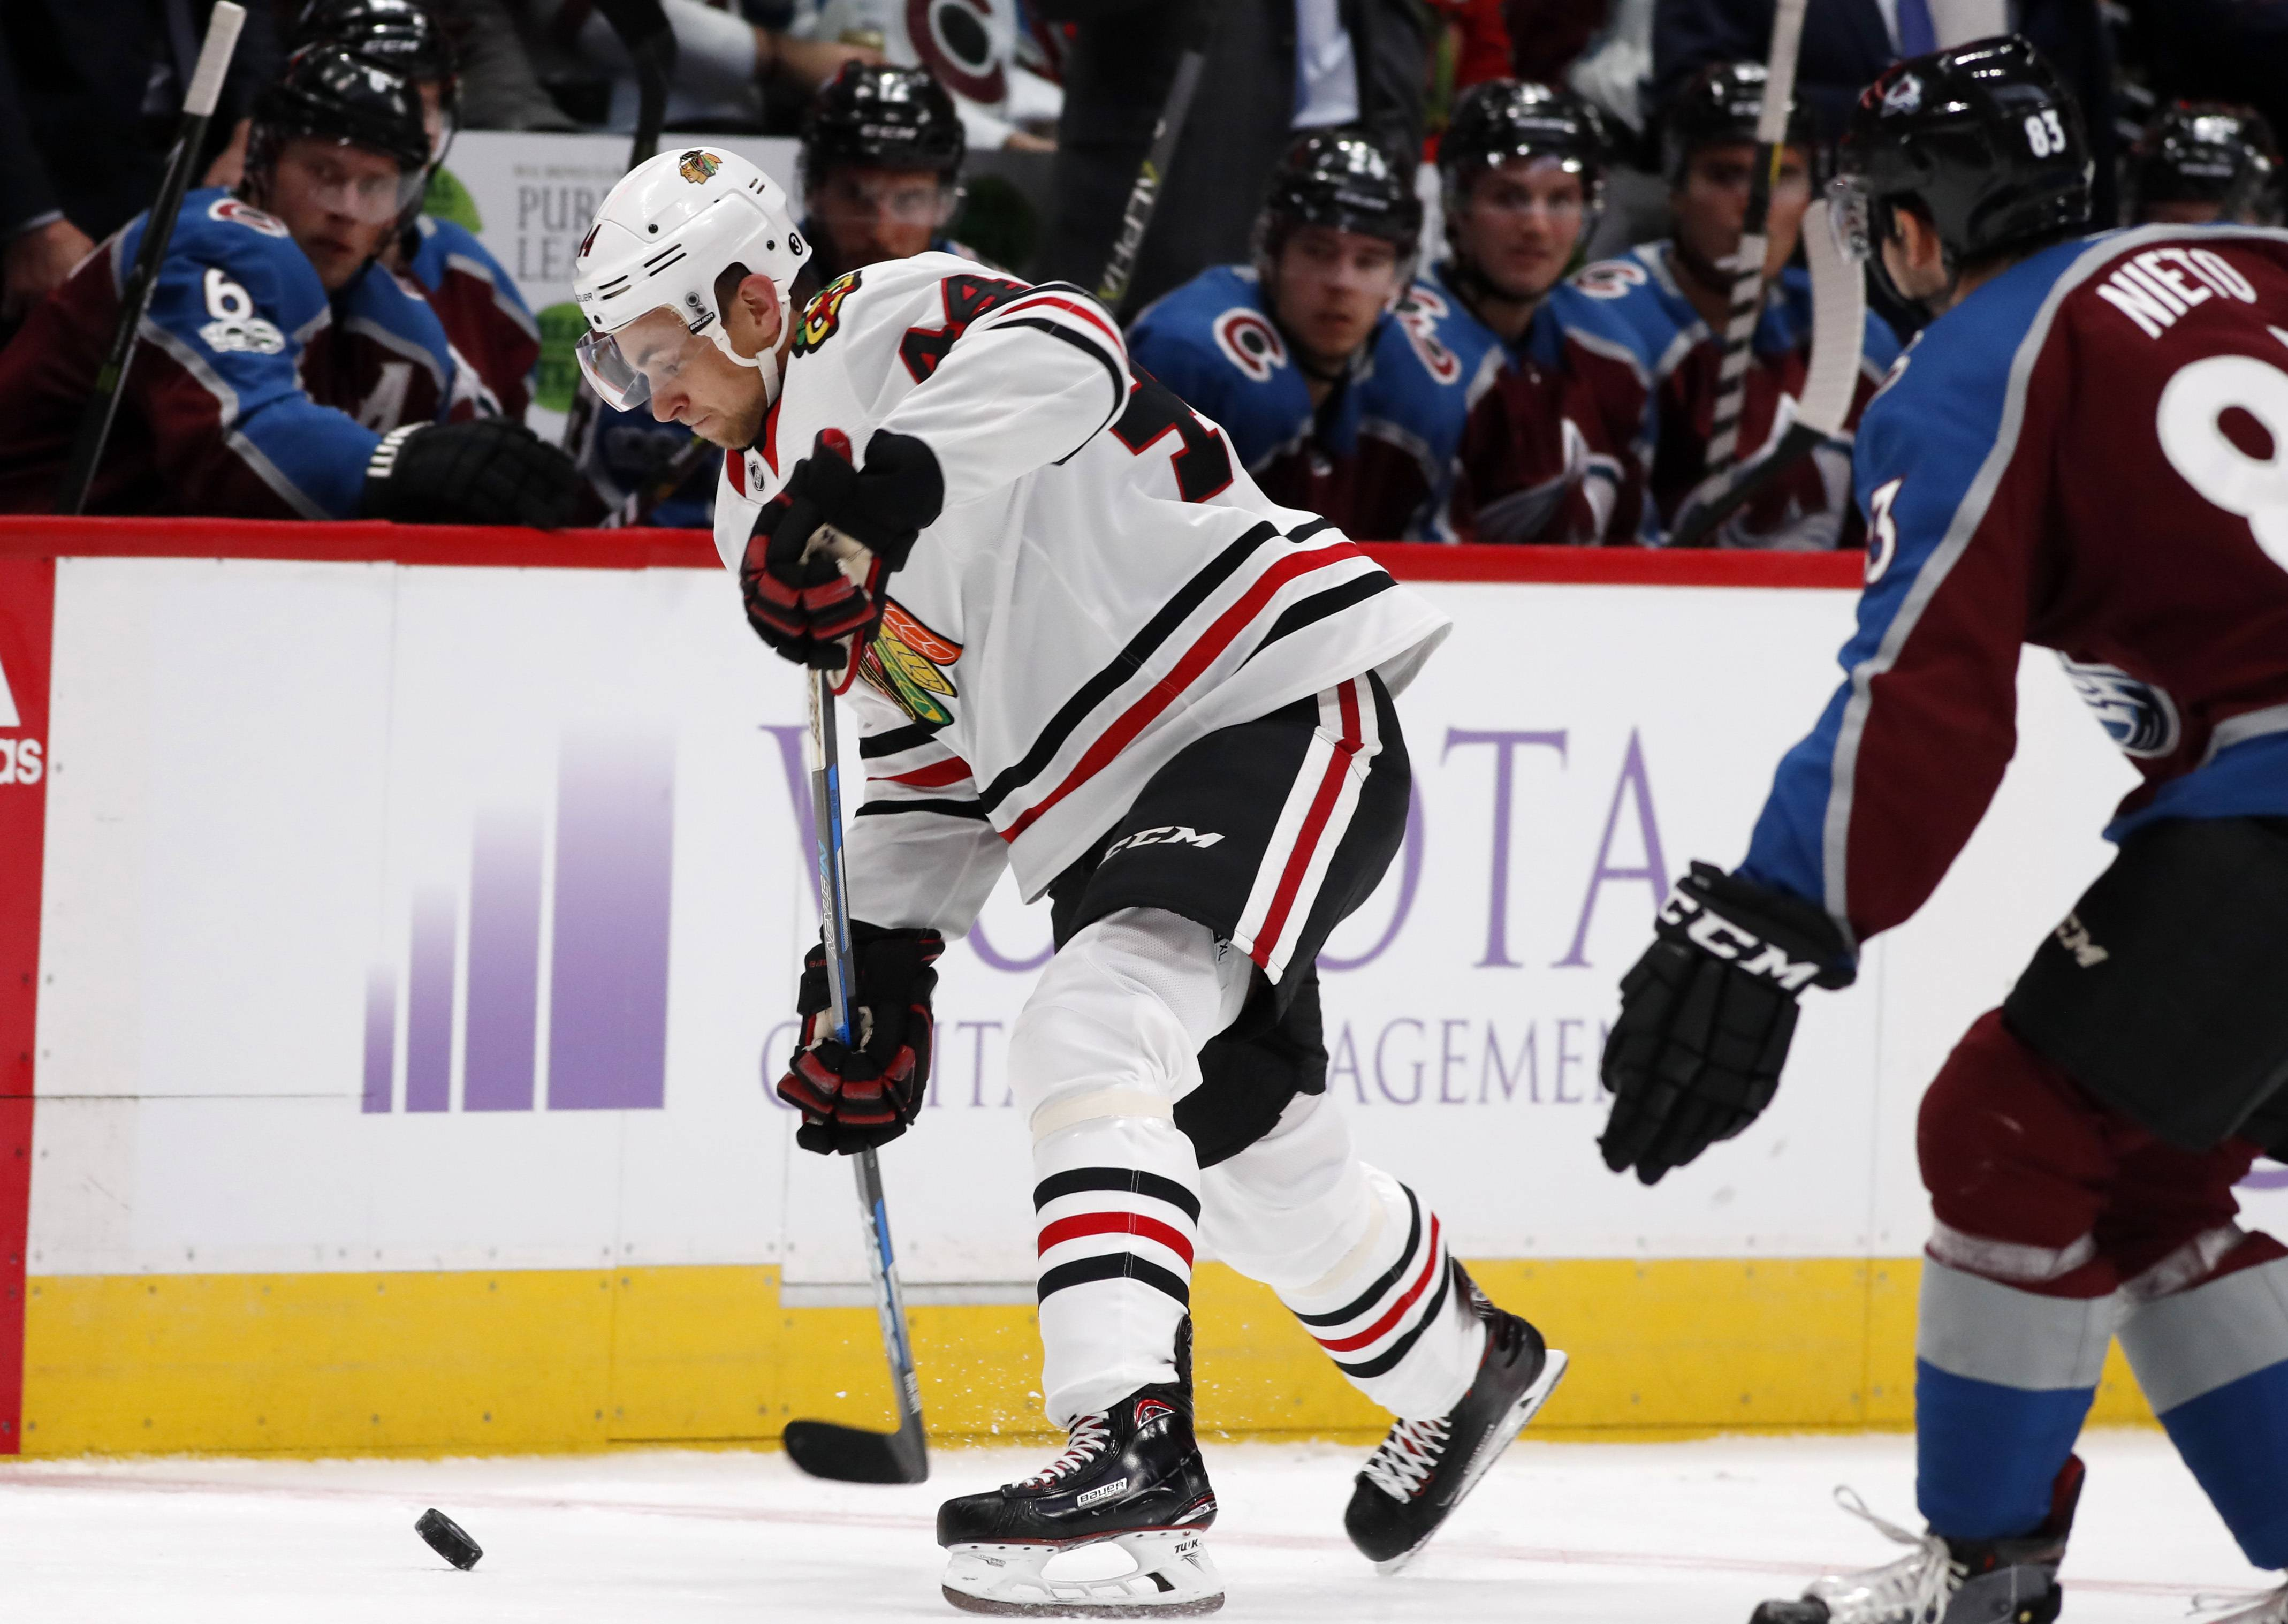 Chicago Blackhawks defenseman Jan Rutta, left, of the Czech Republic, uncorks a shot as Colorado Avalanche left wing Matt Nieto defends in the second period of an NHL hockey game Saturday, Oct. 28, 2017, in Denver. (AP Photo/David Zalubowski)